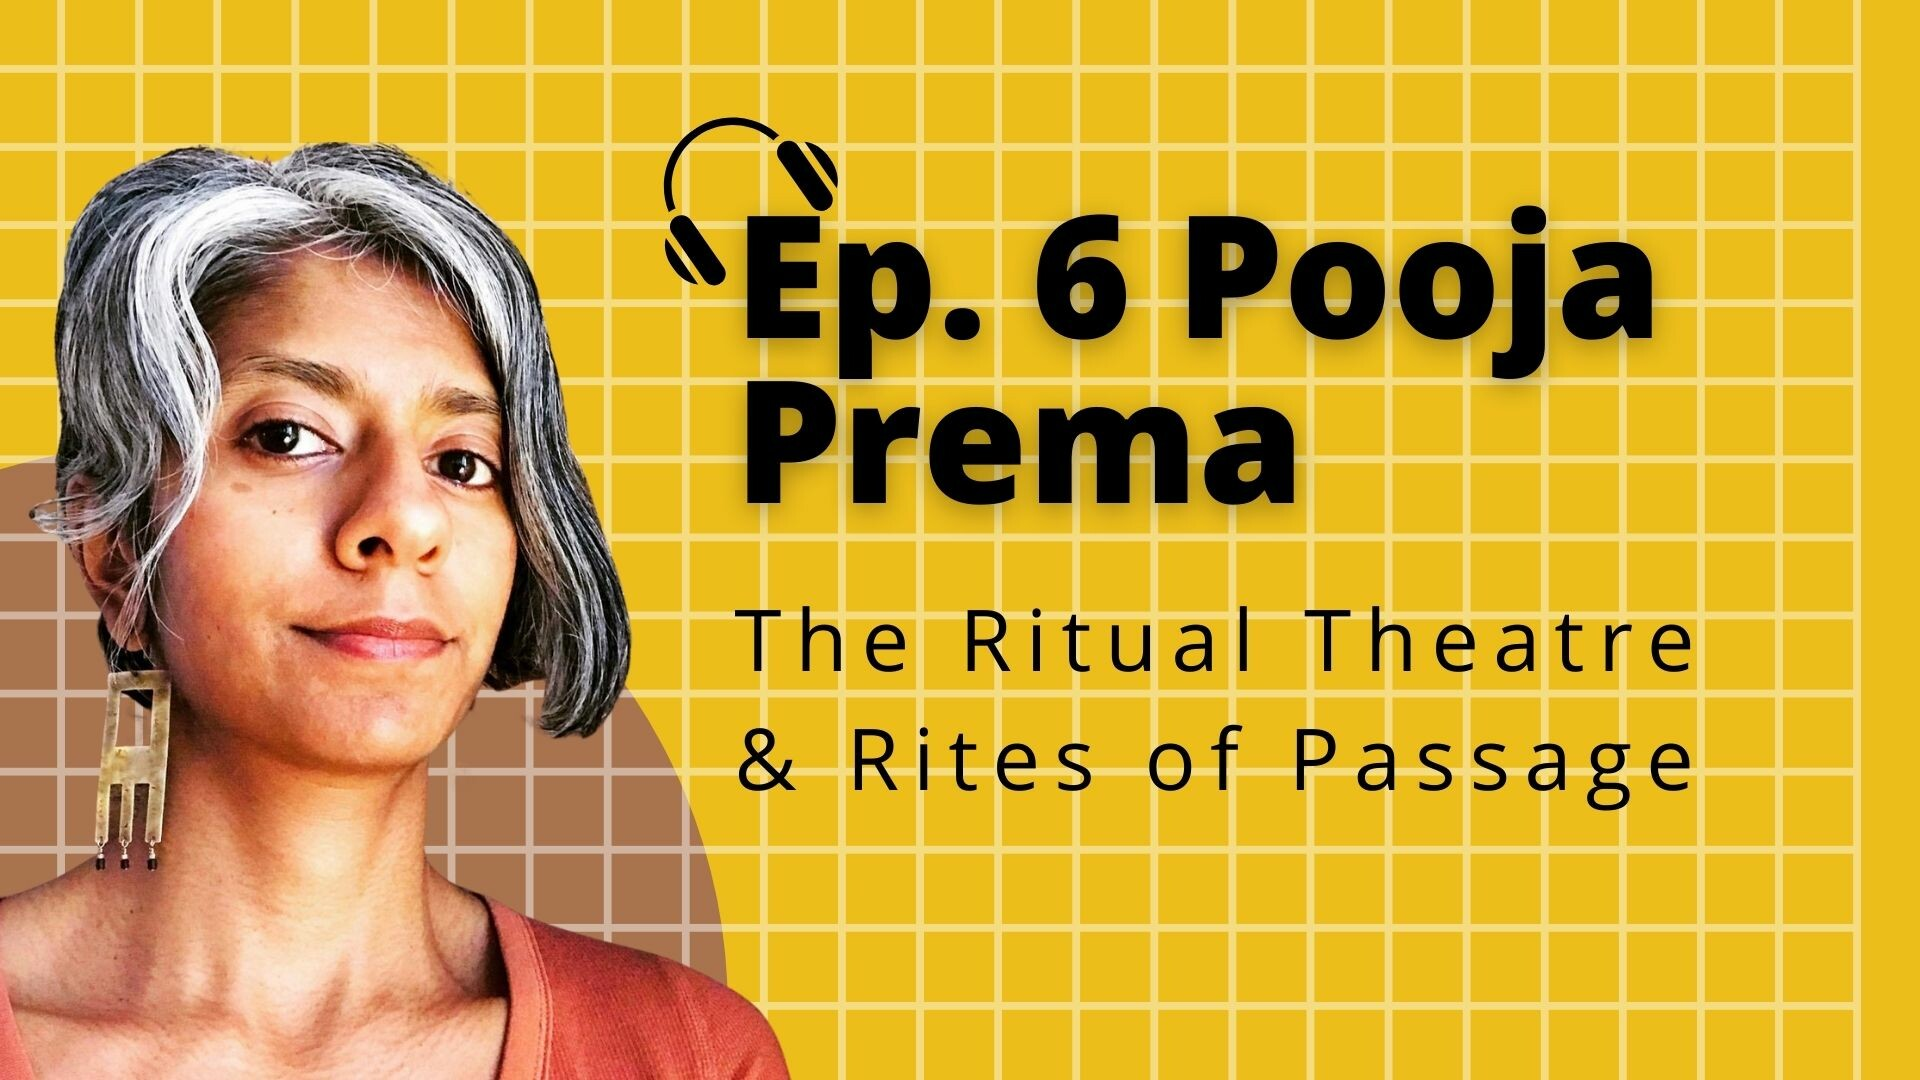 ep. 6 Pooja Prema: The Ritual Theatre & Rites of Passage